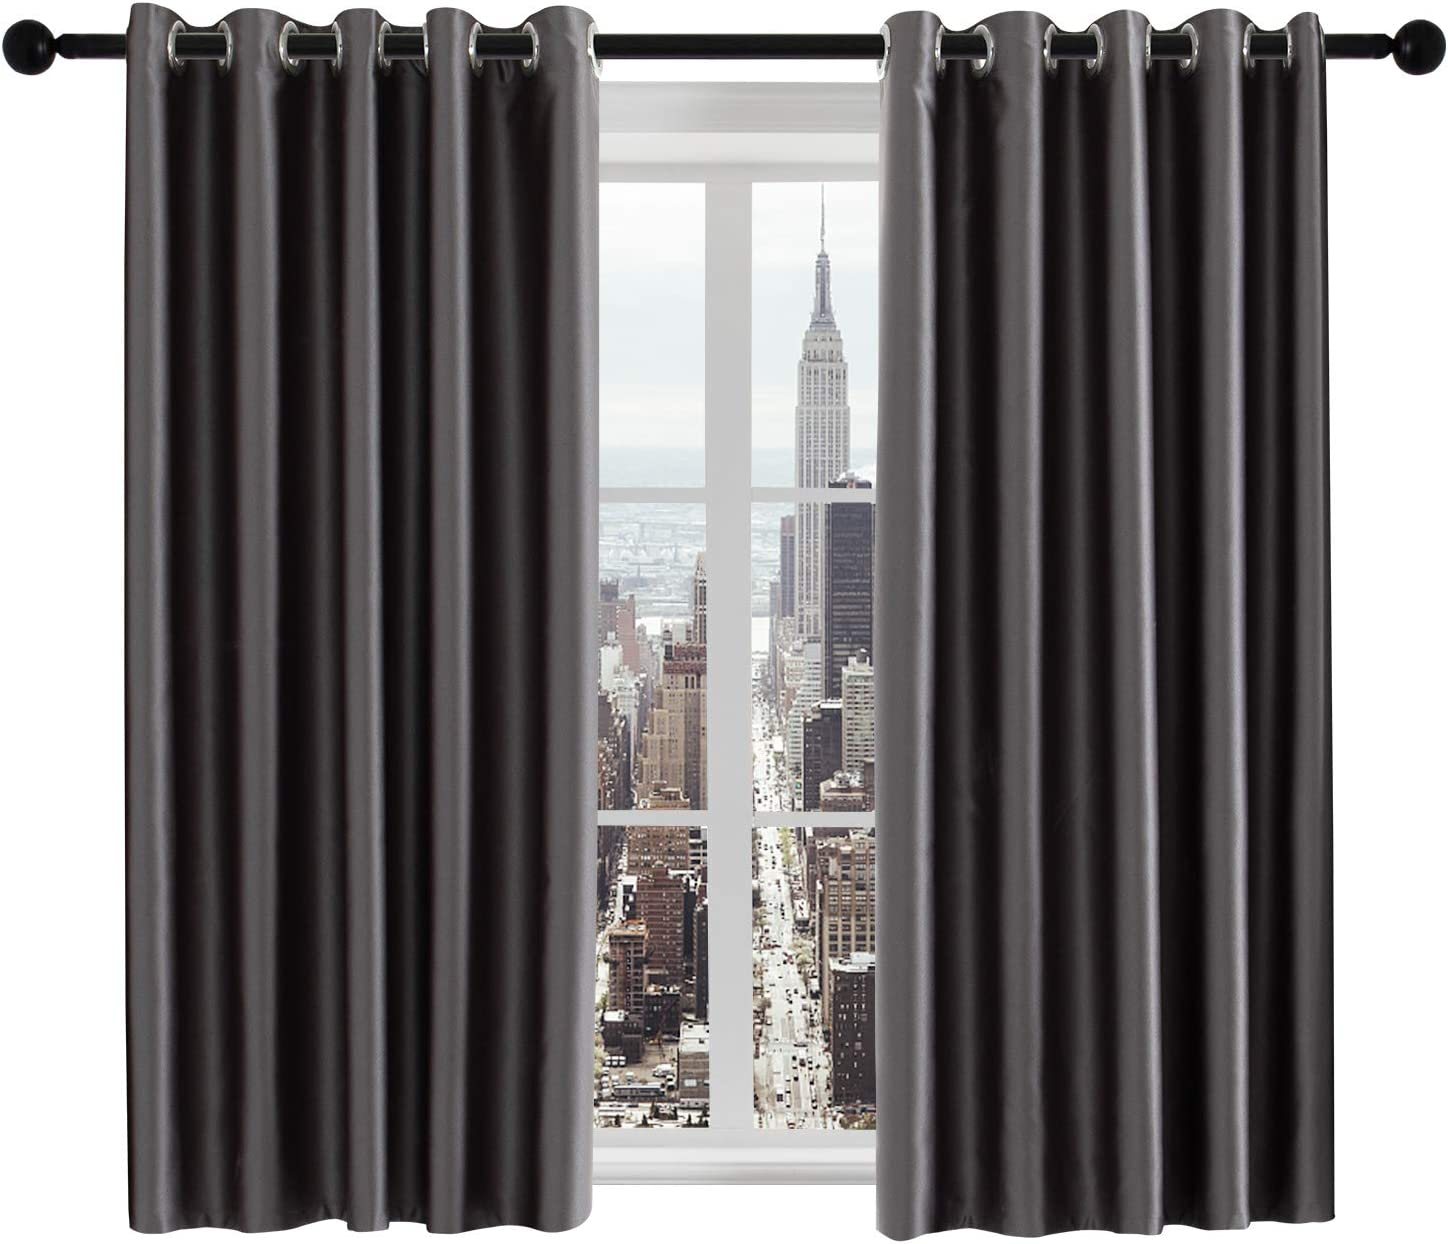 VEGA sale 40% OFF Cheap Sale U Blackout Curtains Glossy - Protection Ther Privacy Series